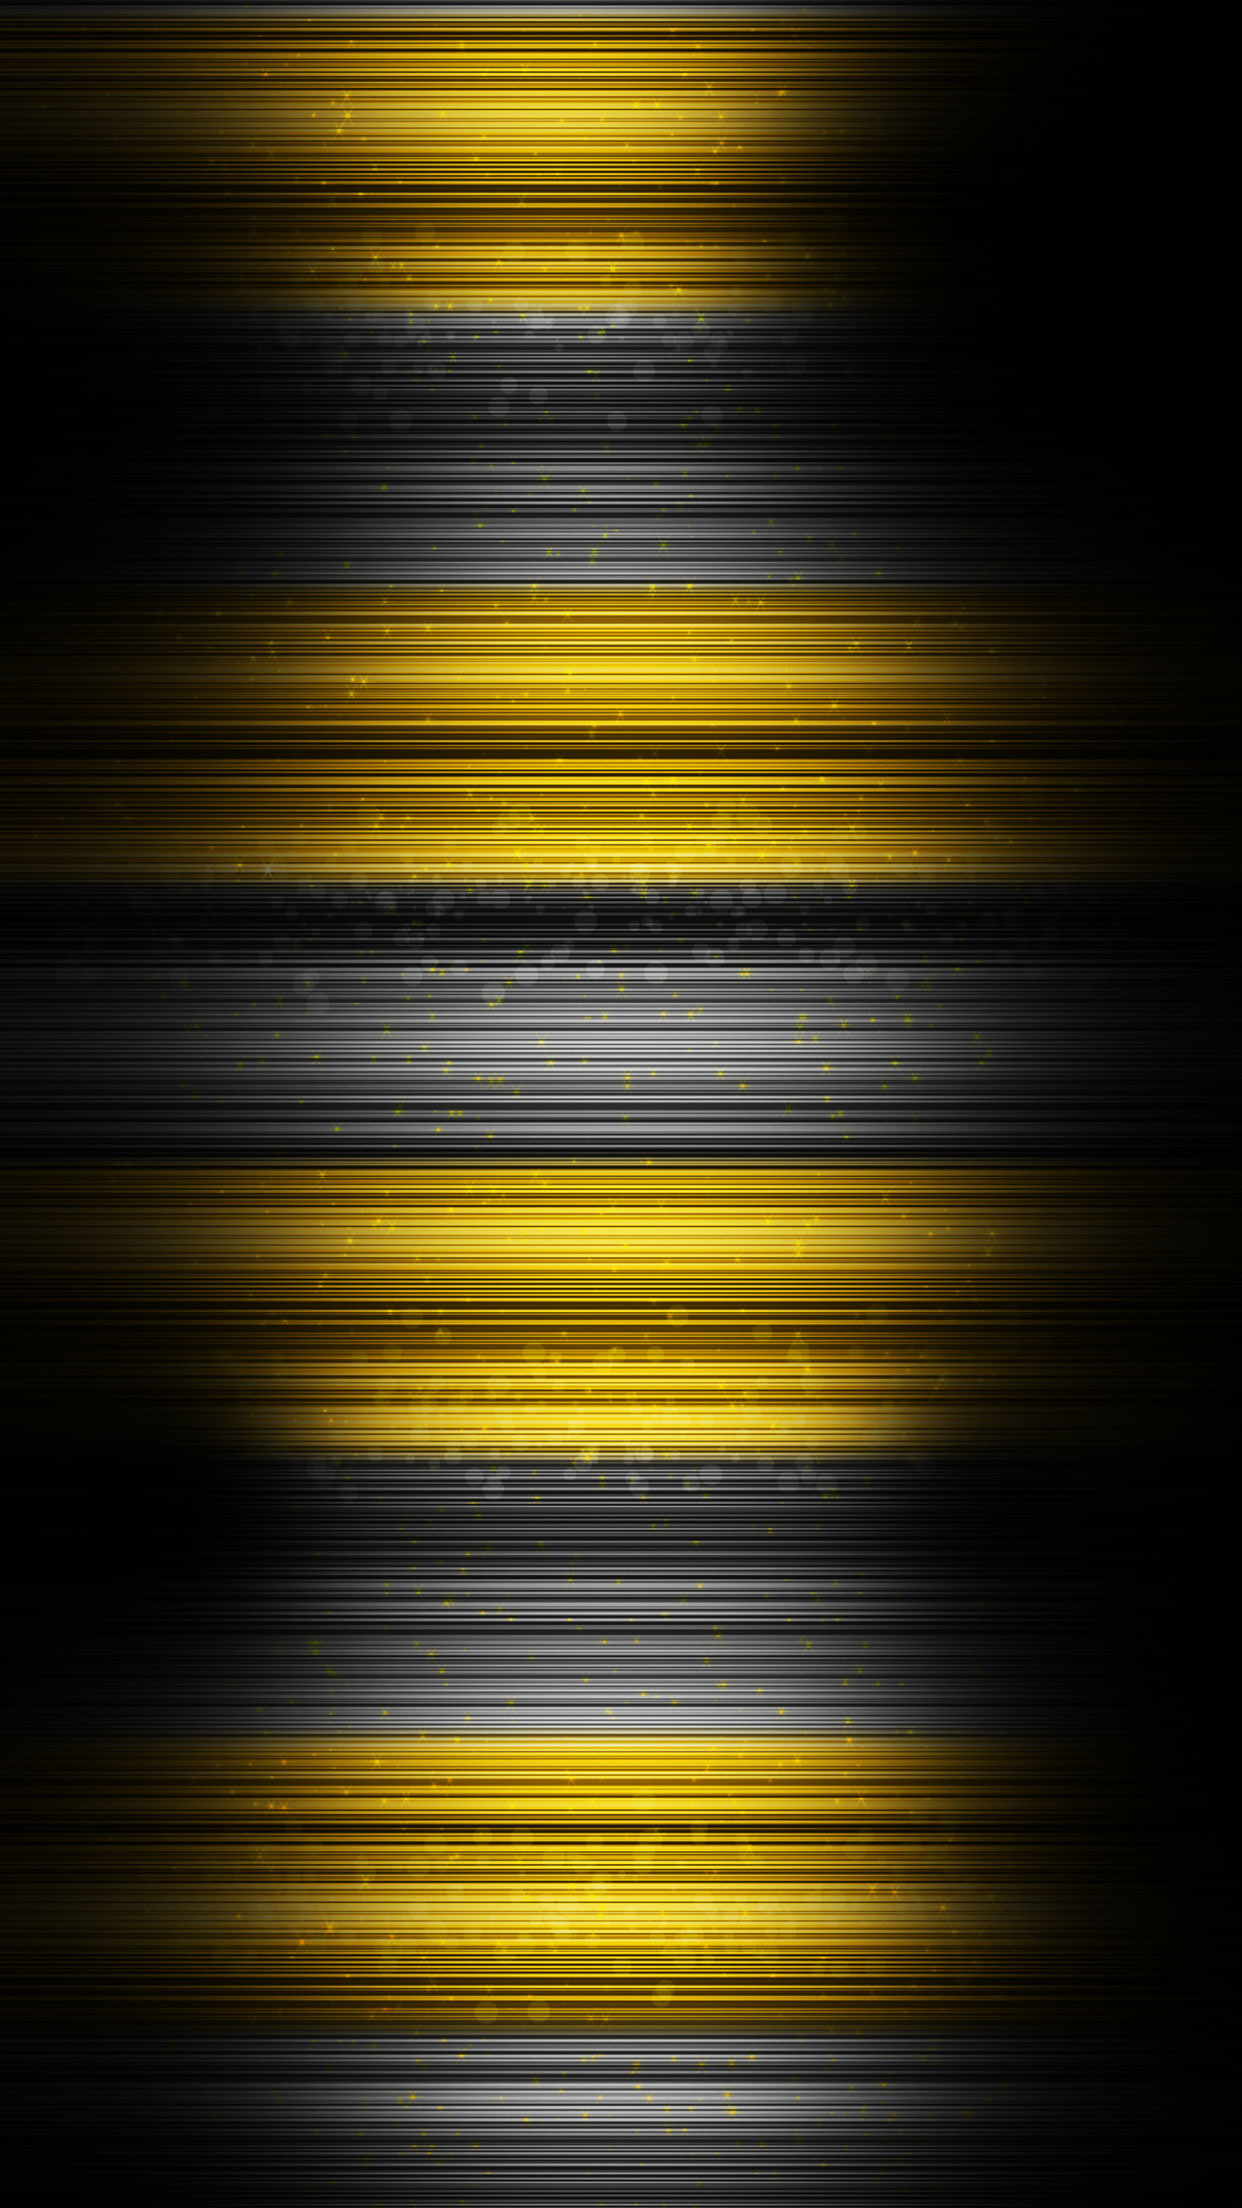 Aesthetic Black And Yellow Wallpaper Iphone Wallpaper Hd For Android